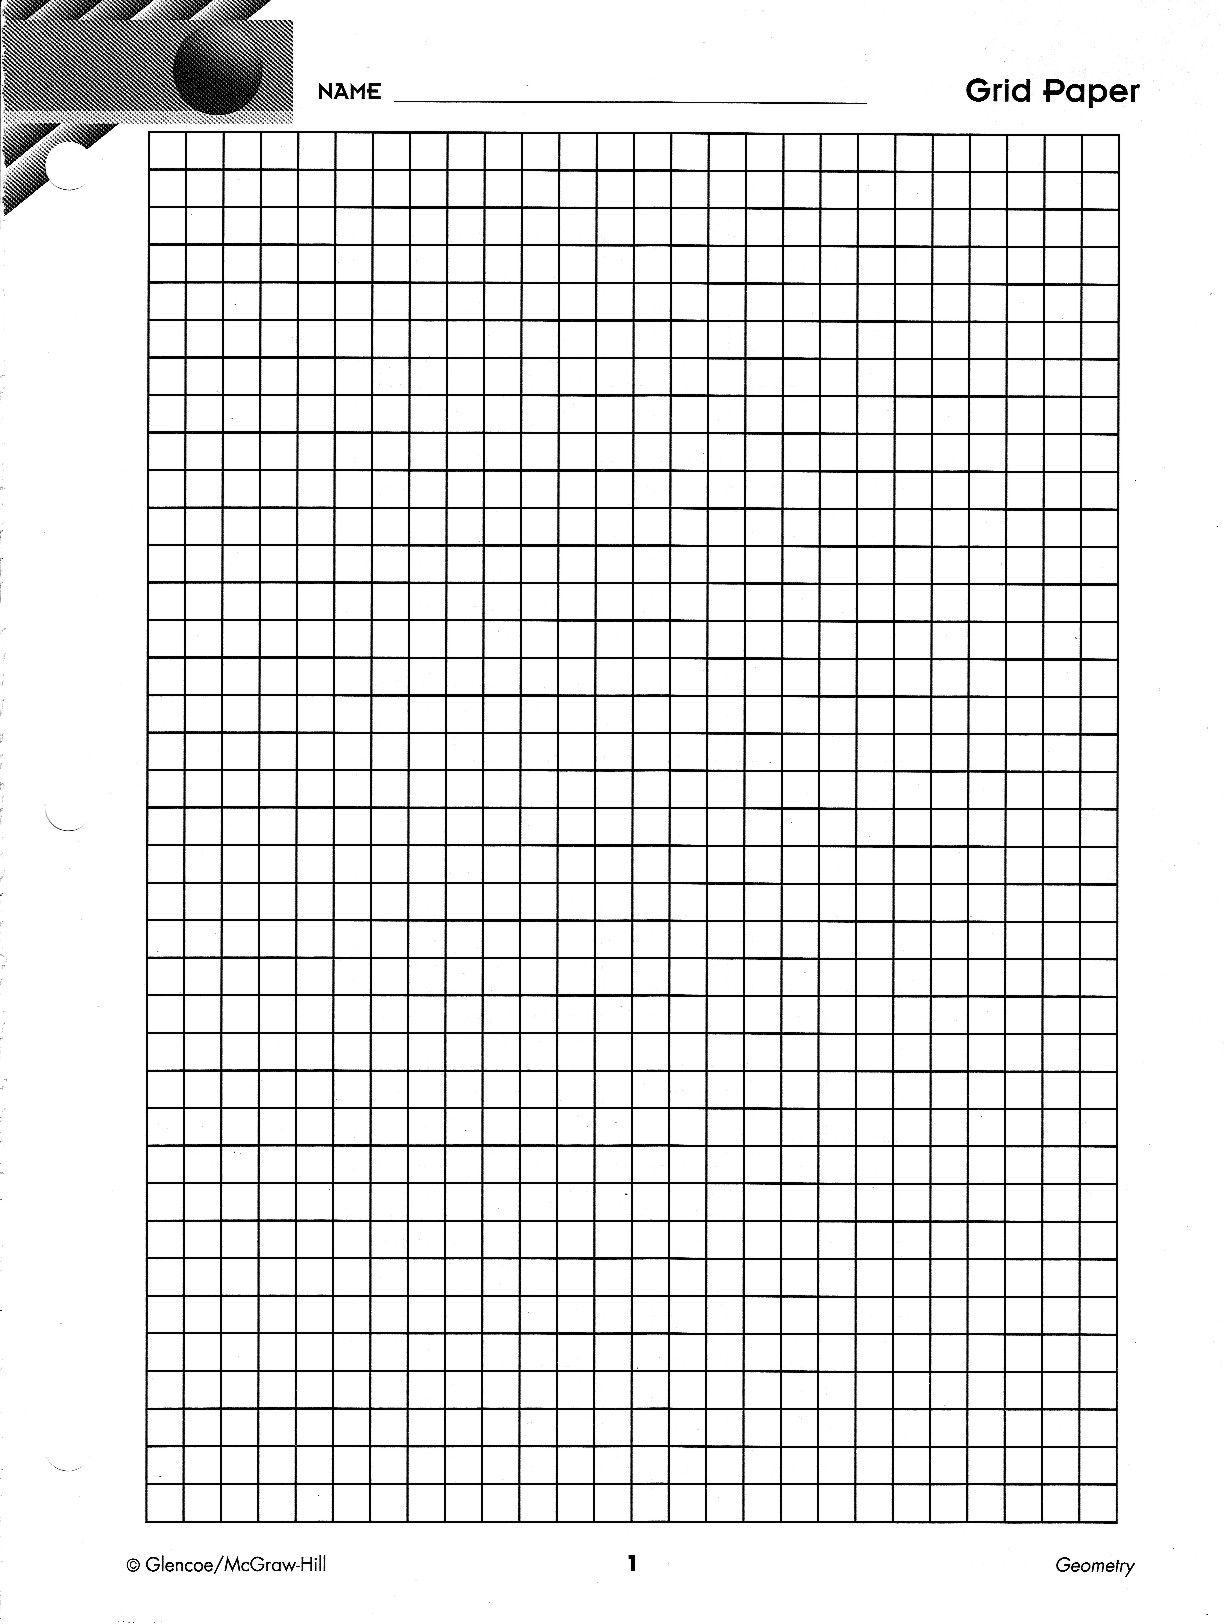 grid paper drawing